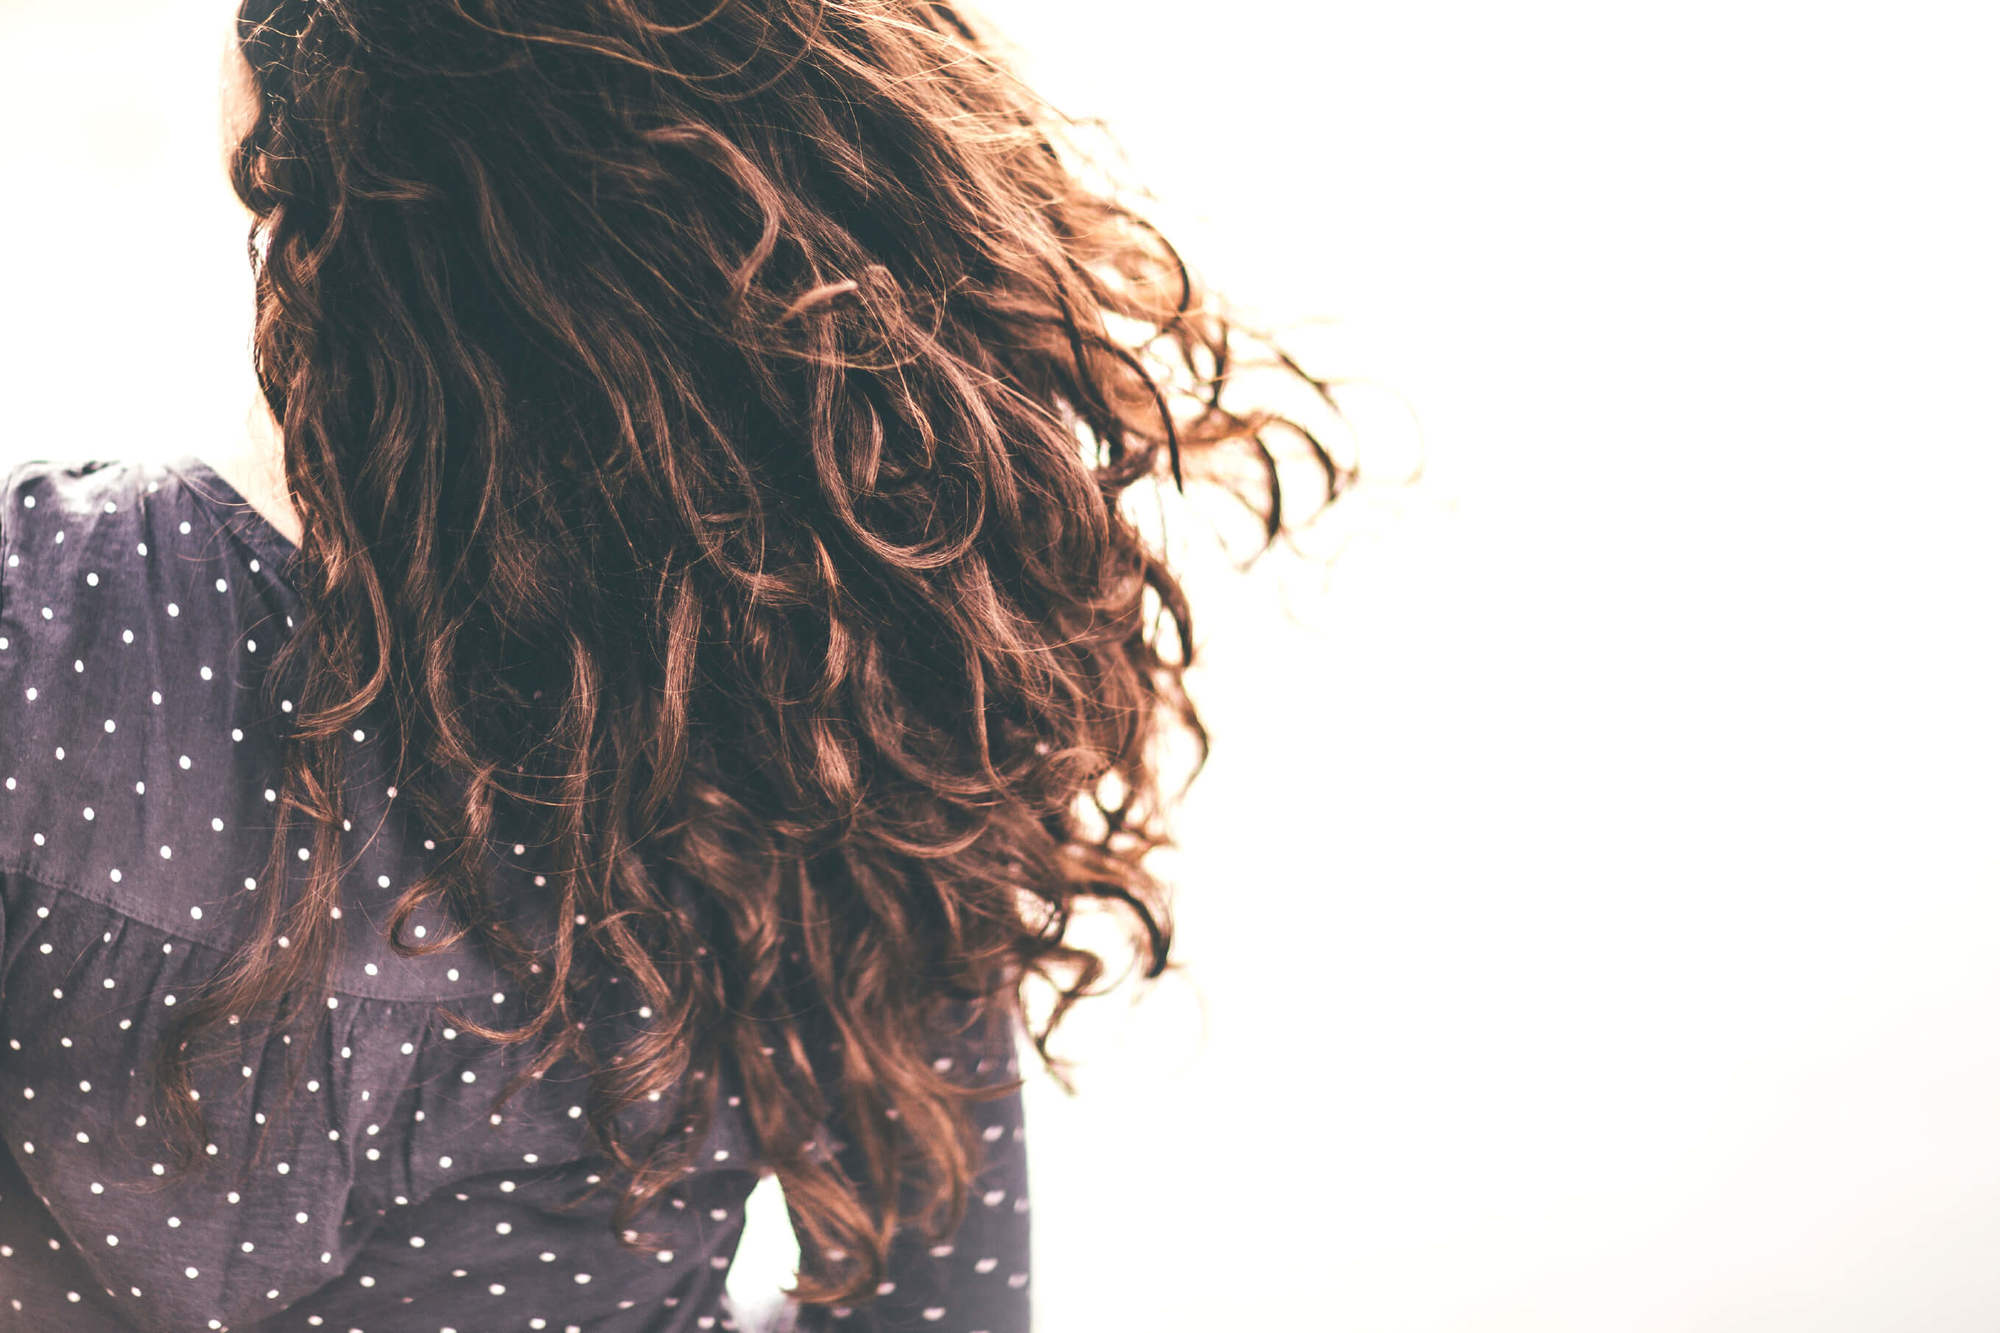 Permed hair care back of woman's head with brunette curly hair